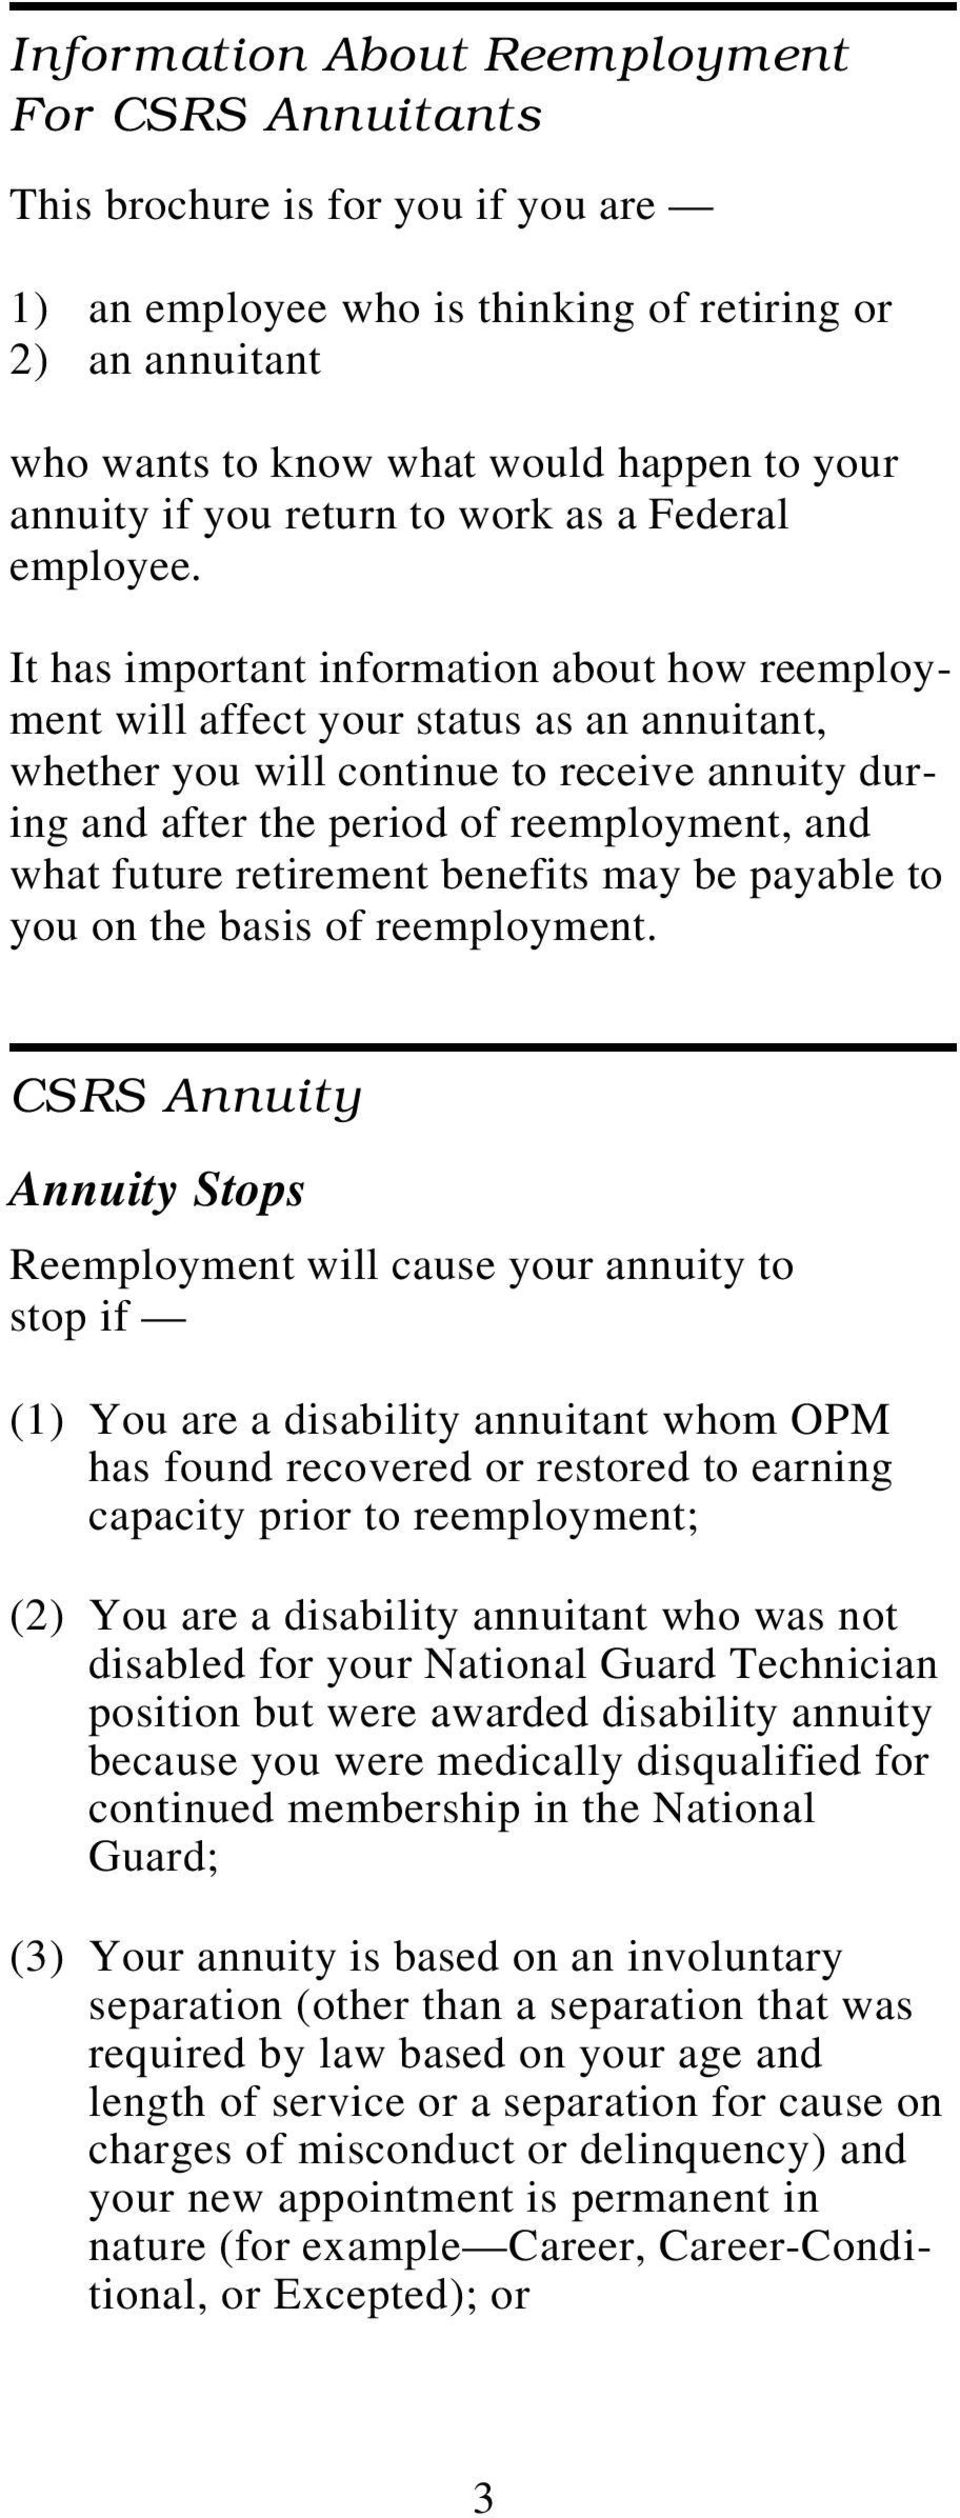 It has important information about how reemployment will affect your status as an annuitant, whether you will continue to receive annuity during and after the period of reemployment, and what future